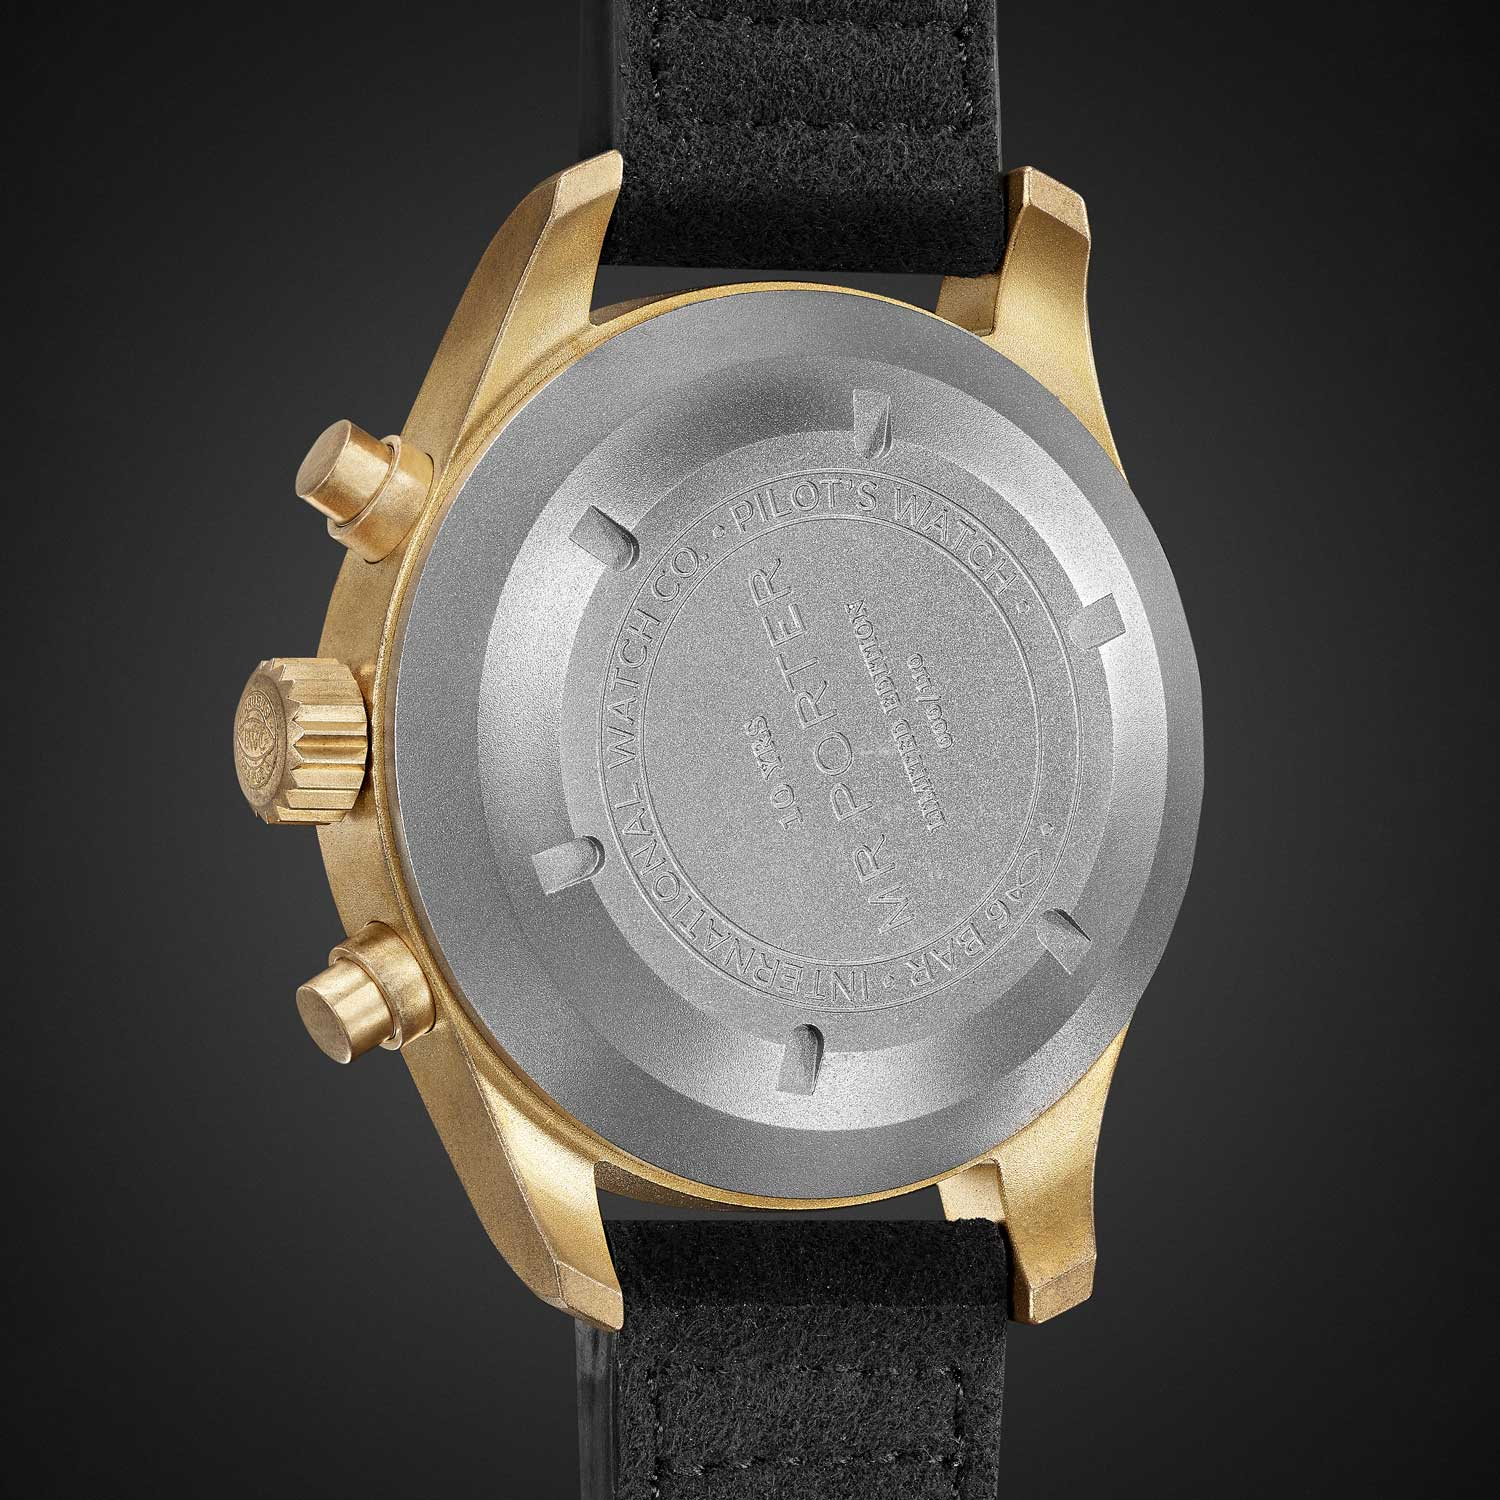 The watch is fitted with a titanium caseback to avoid bronze material exposure to the skin